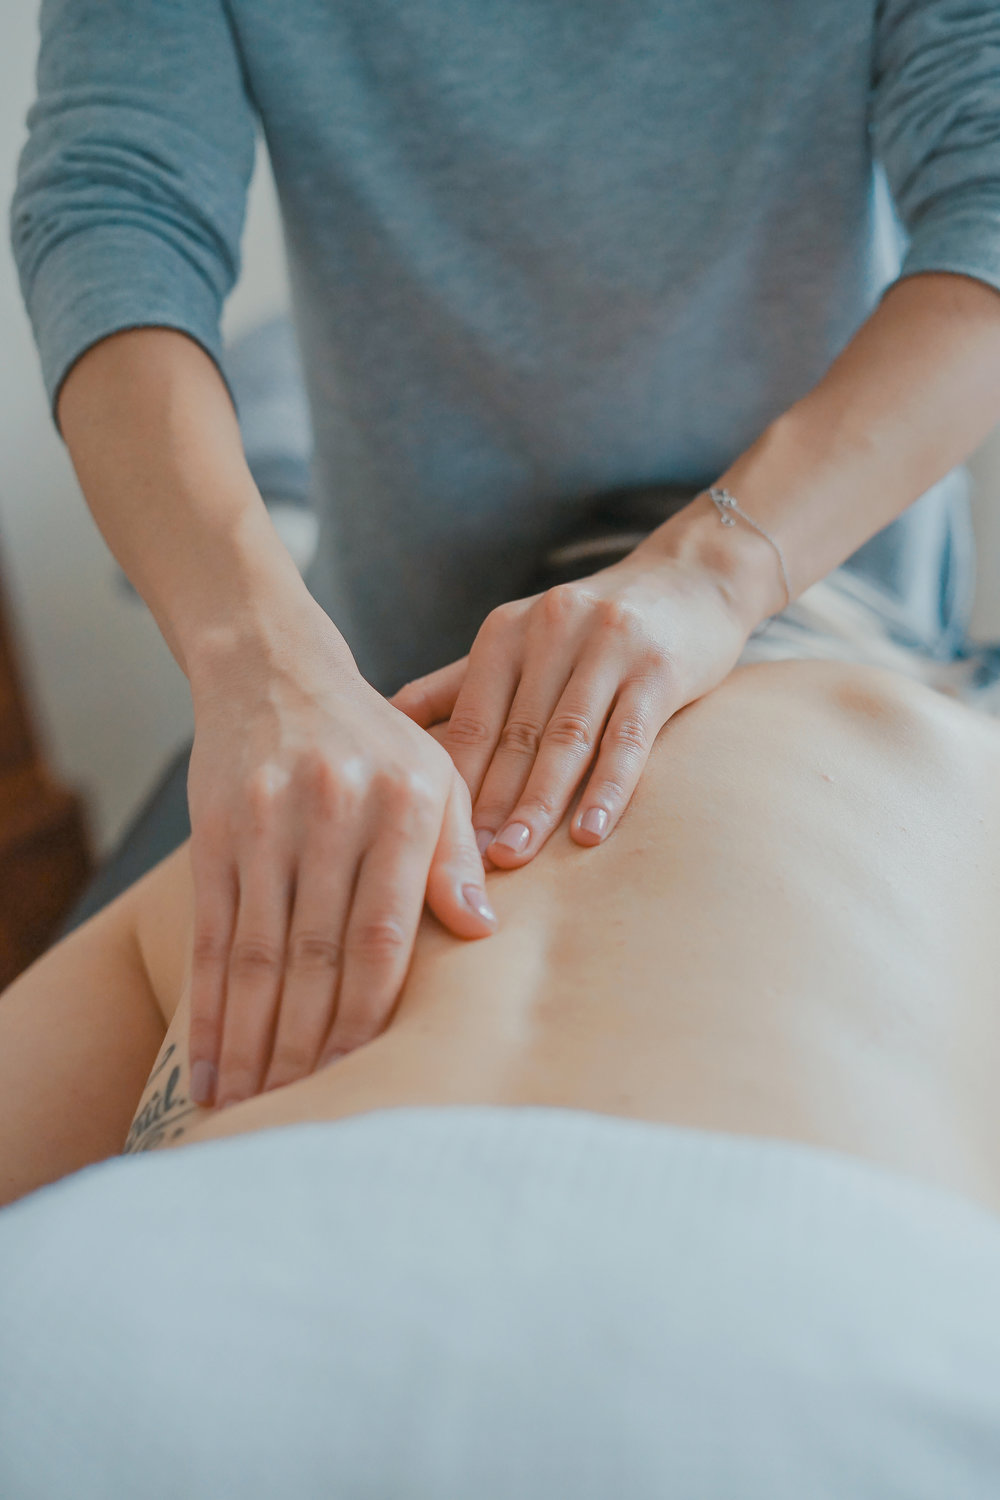 FAST-TRACK MASSAGE TRAINING - 17th September - 26th September 2019